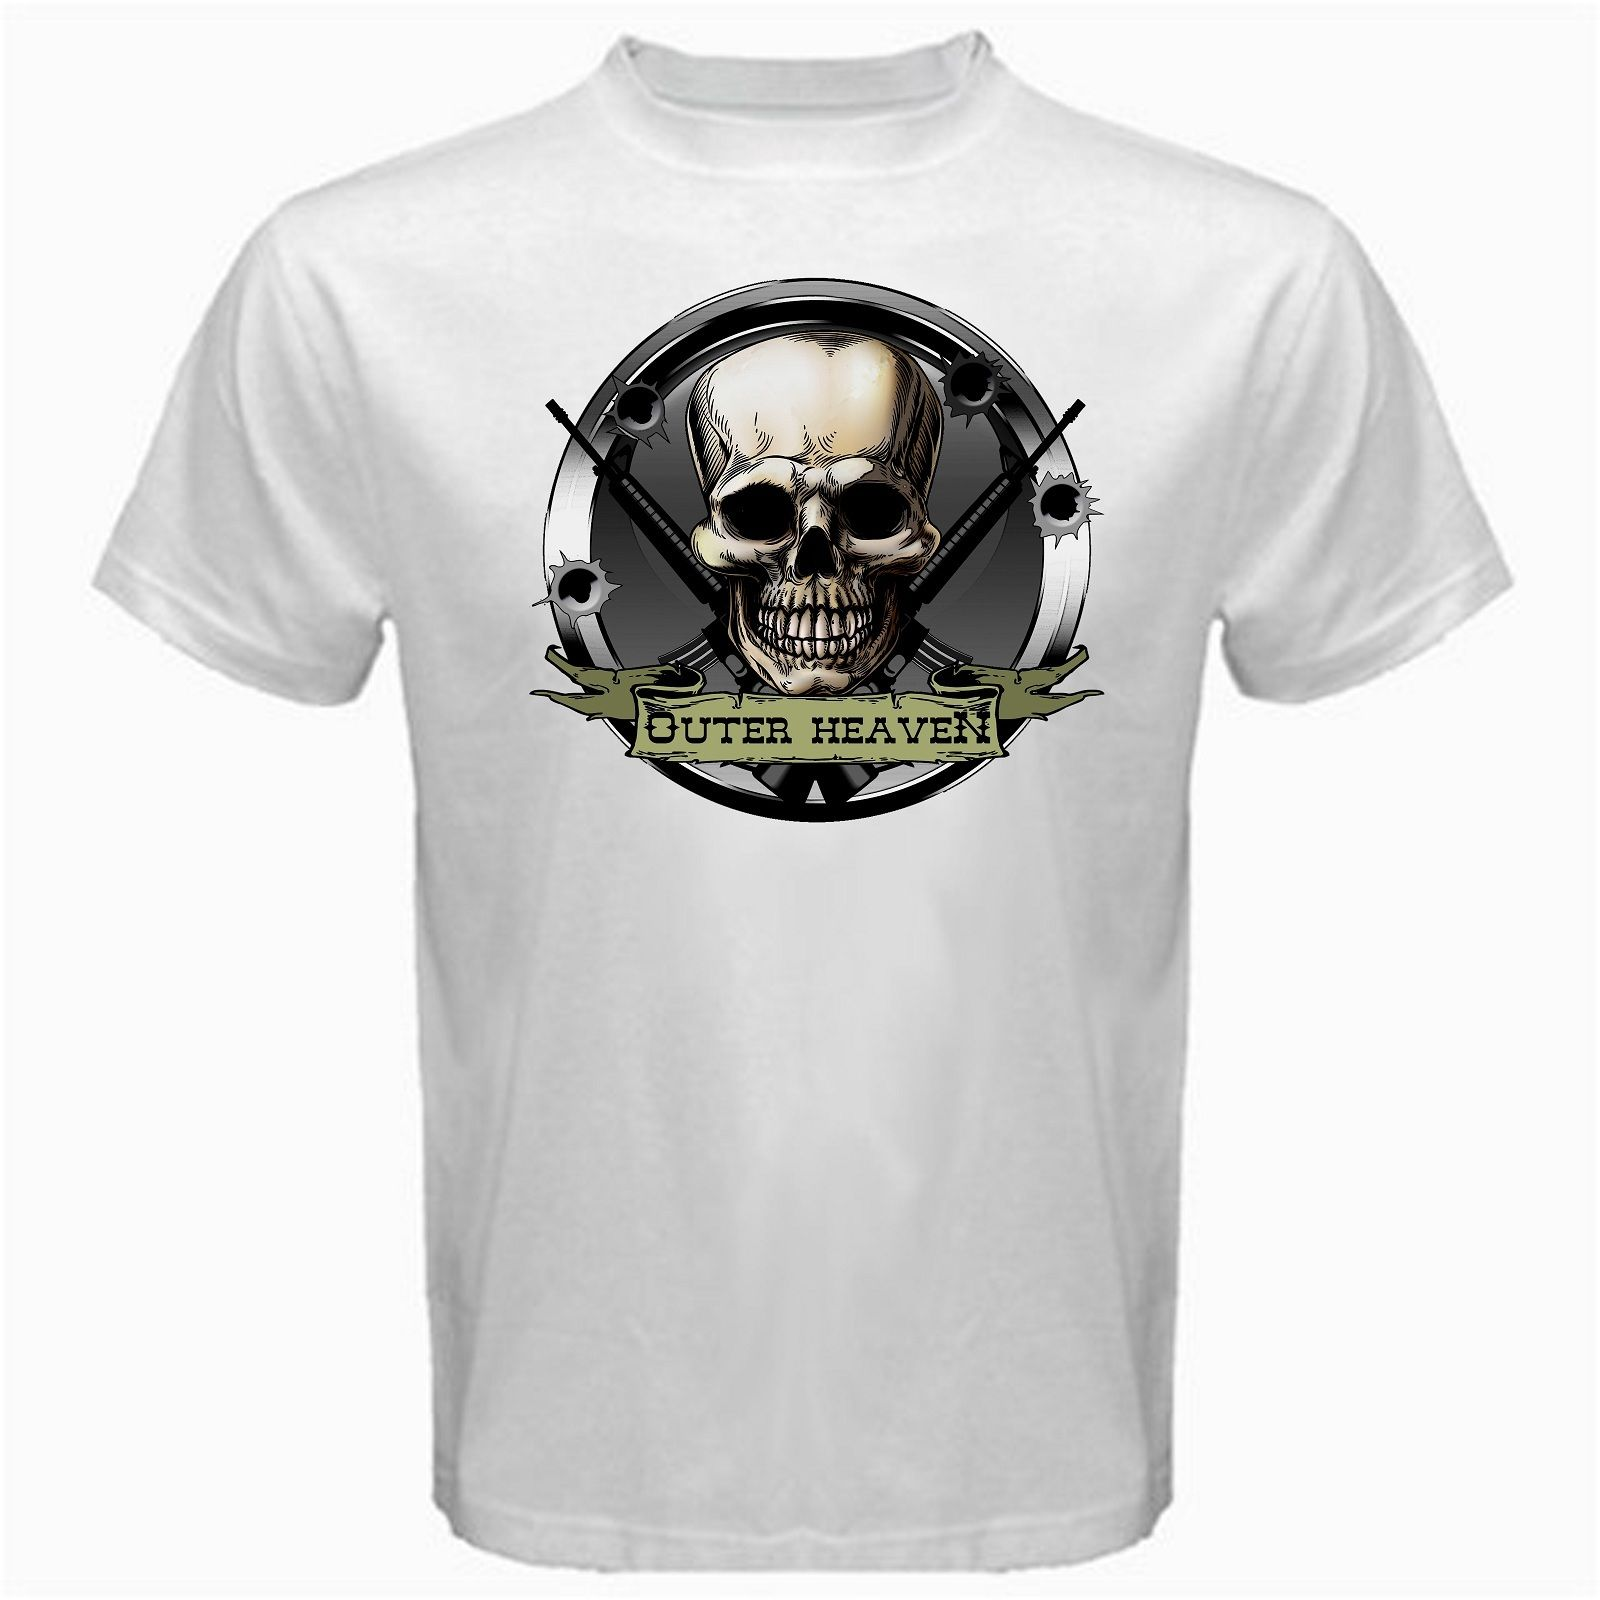 Outer Heaven Metal Gear online Game Tshirt White Basic Tee